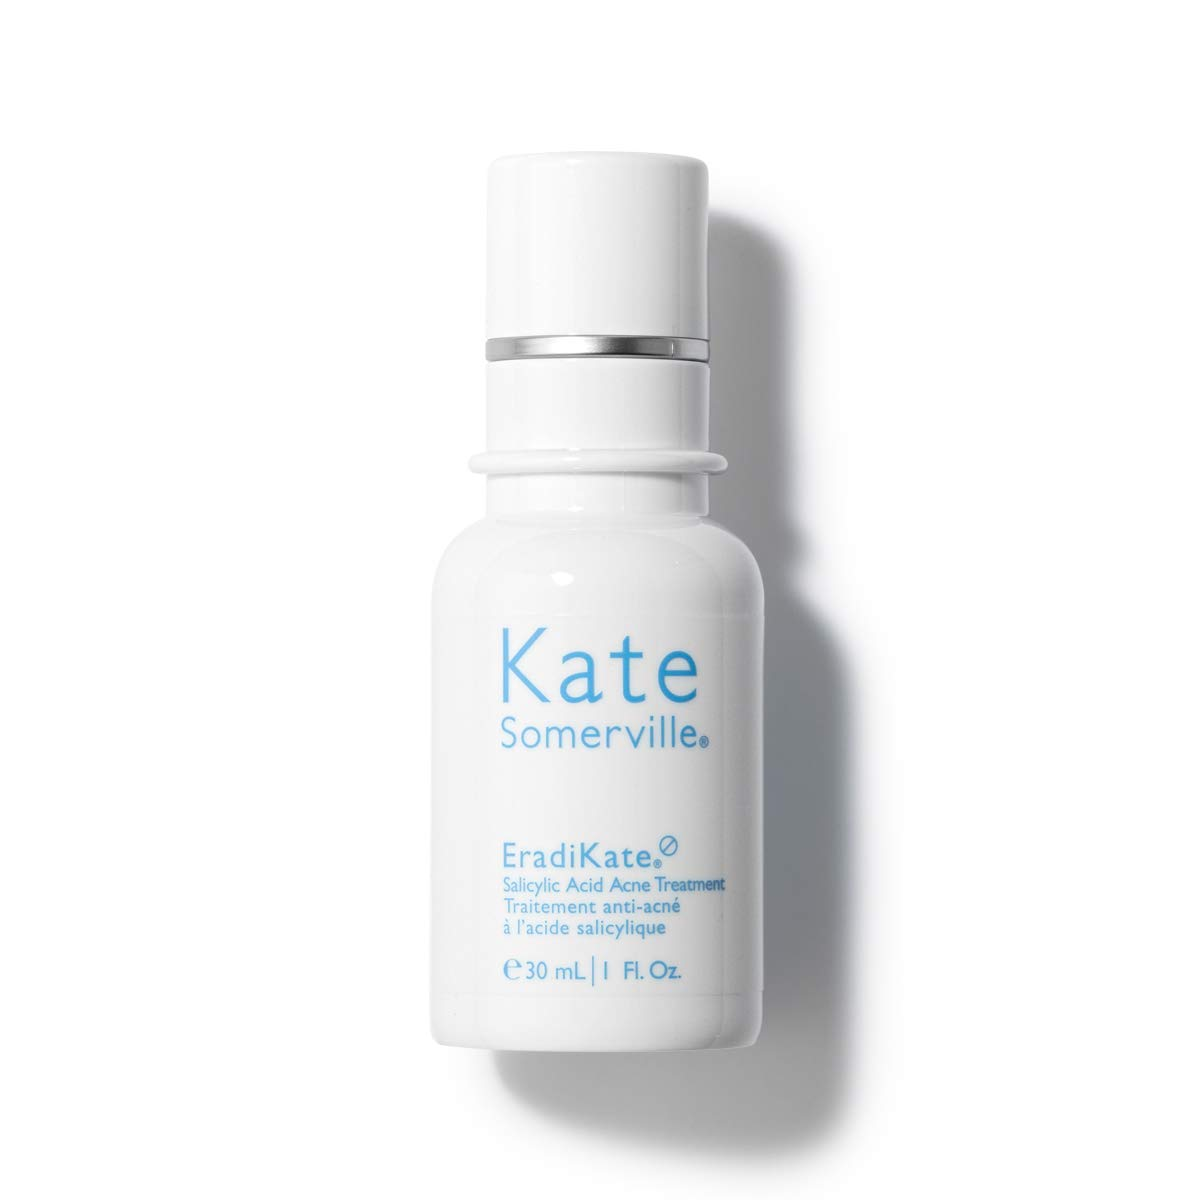 Kate Somerville EradiKate Salicylic Acid Acne Treatment (1 Fl. Oz.) Overnight Treatment Lotion to Clear & Prevent Acne Blemishes, Smooth Skin Texture, and Minimize the Look of Pores